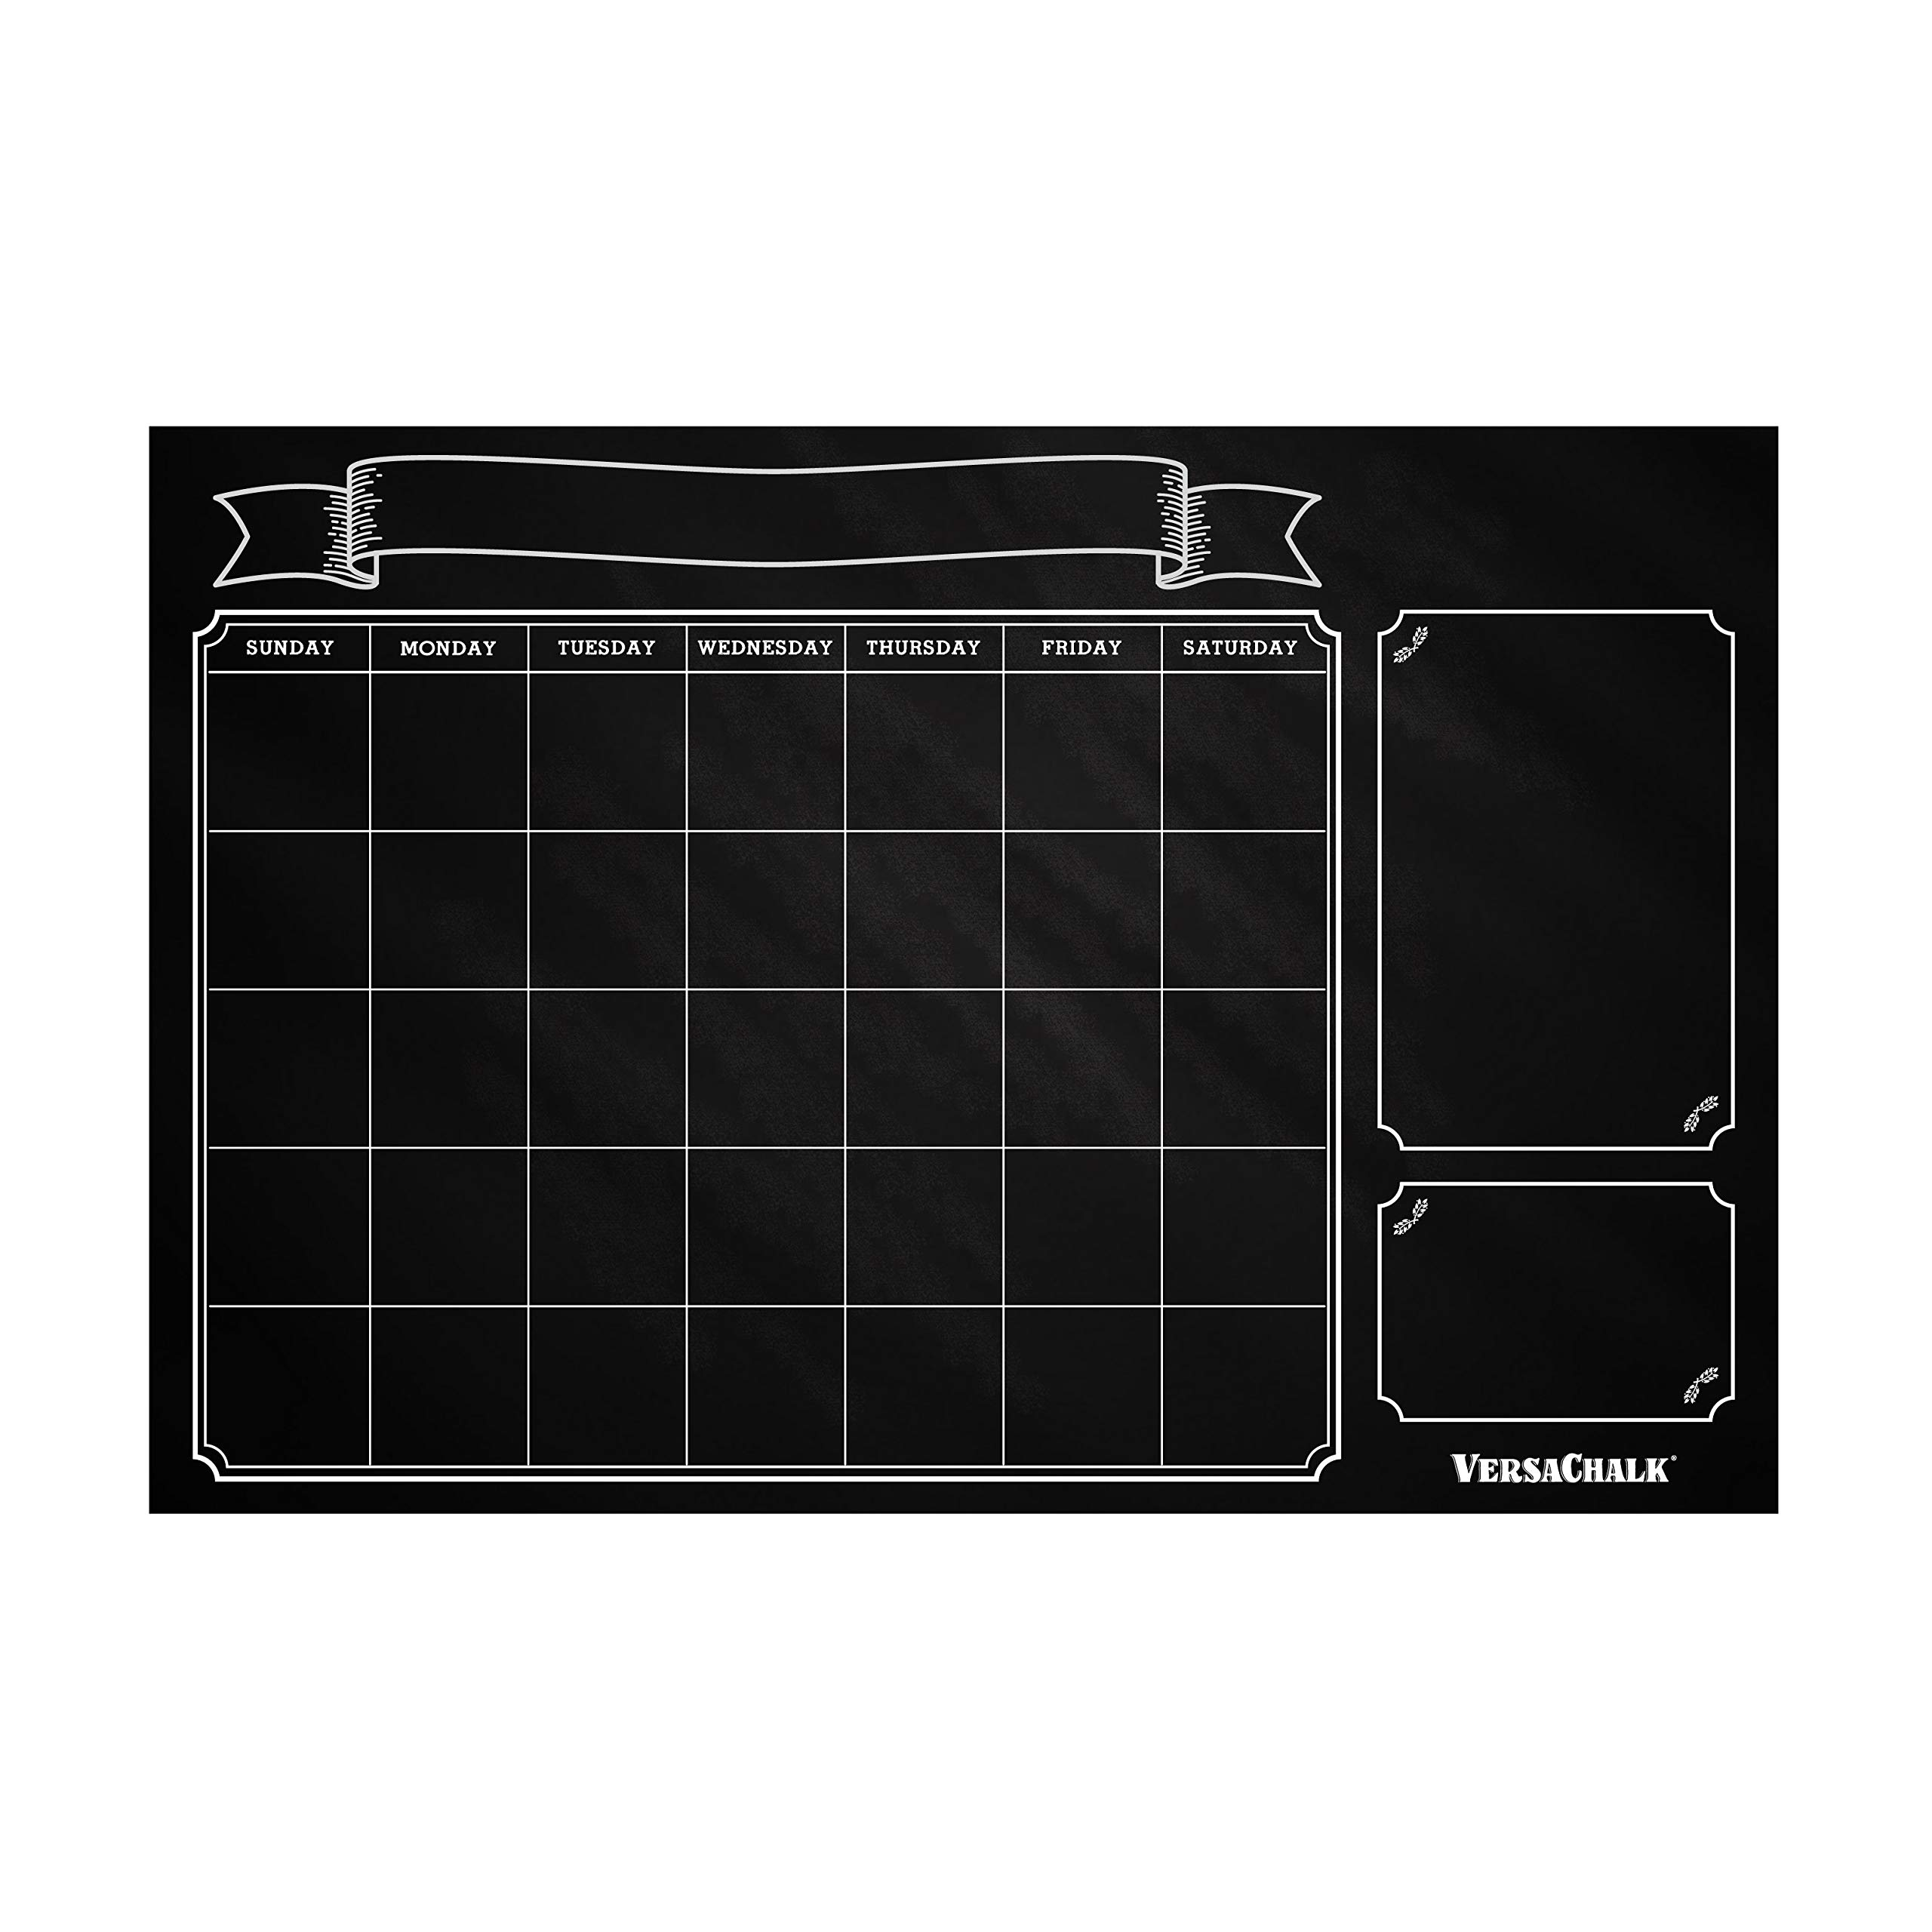 """Huge Dry Erase Chalkboard Calendar for Wall by VersaChalk (24 x 36"""" Vintage Erasable Calendar for Wall) Rustic Black Chalkboard Wall Calendar Decal for Classroom, Chore Chart for Kids"""